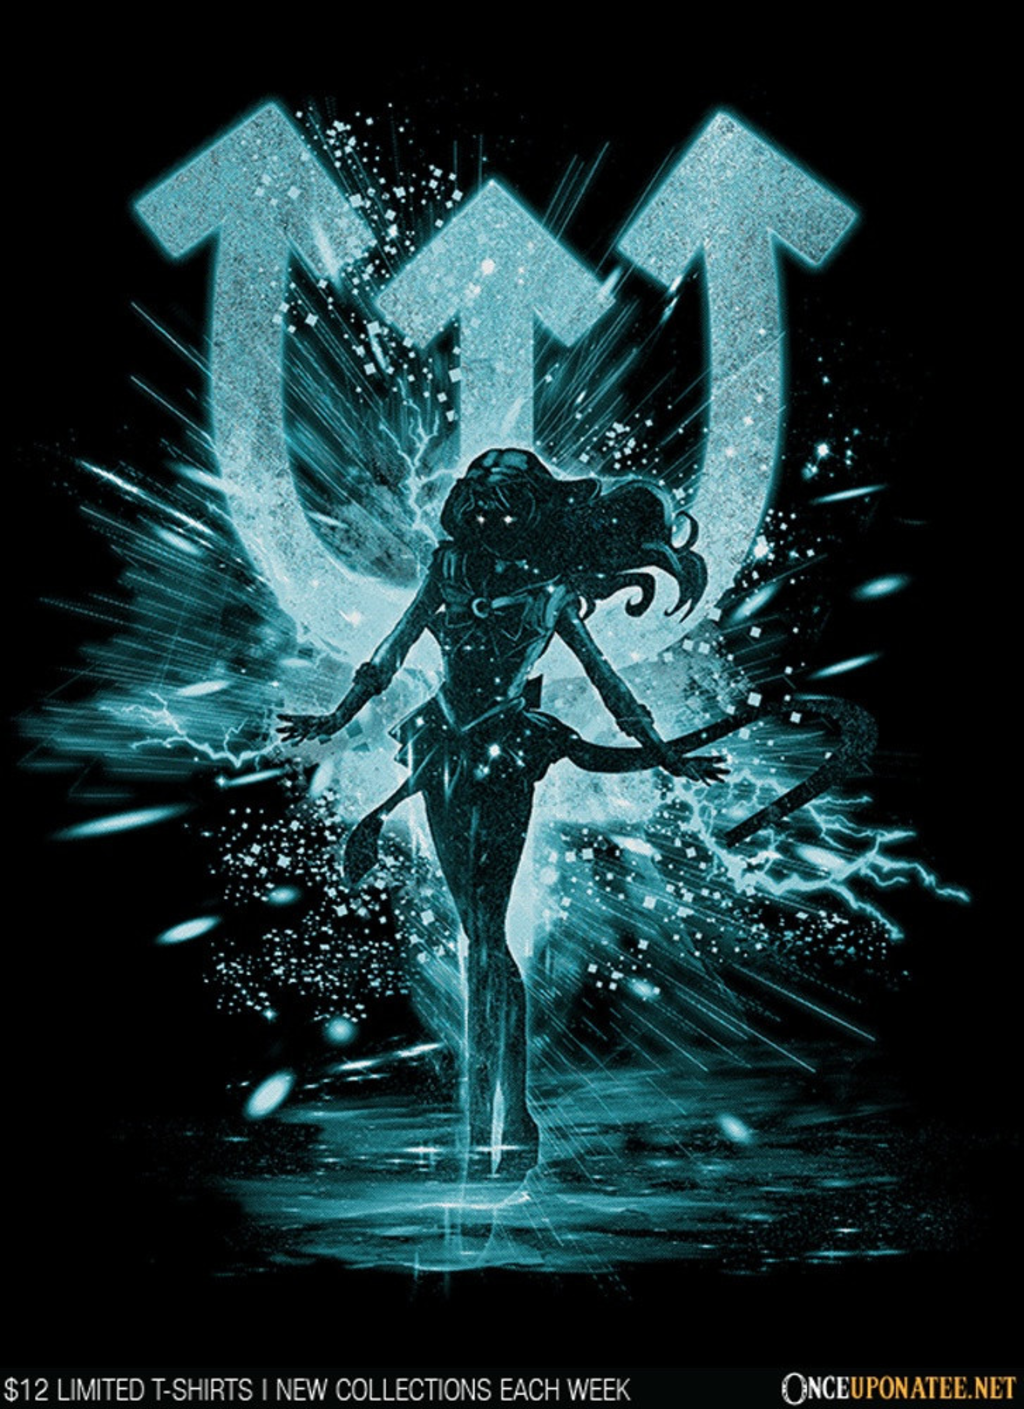 Once Upon a Tee: Neptune Storm